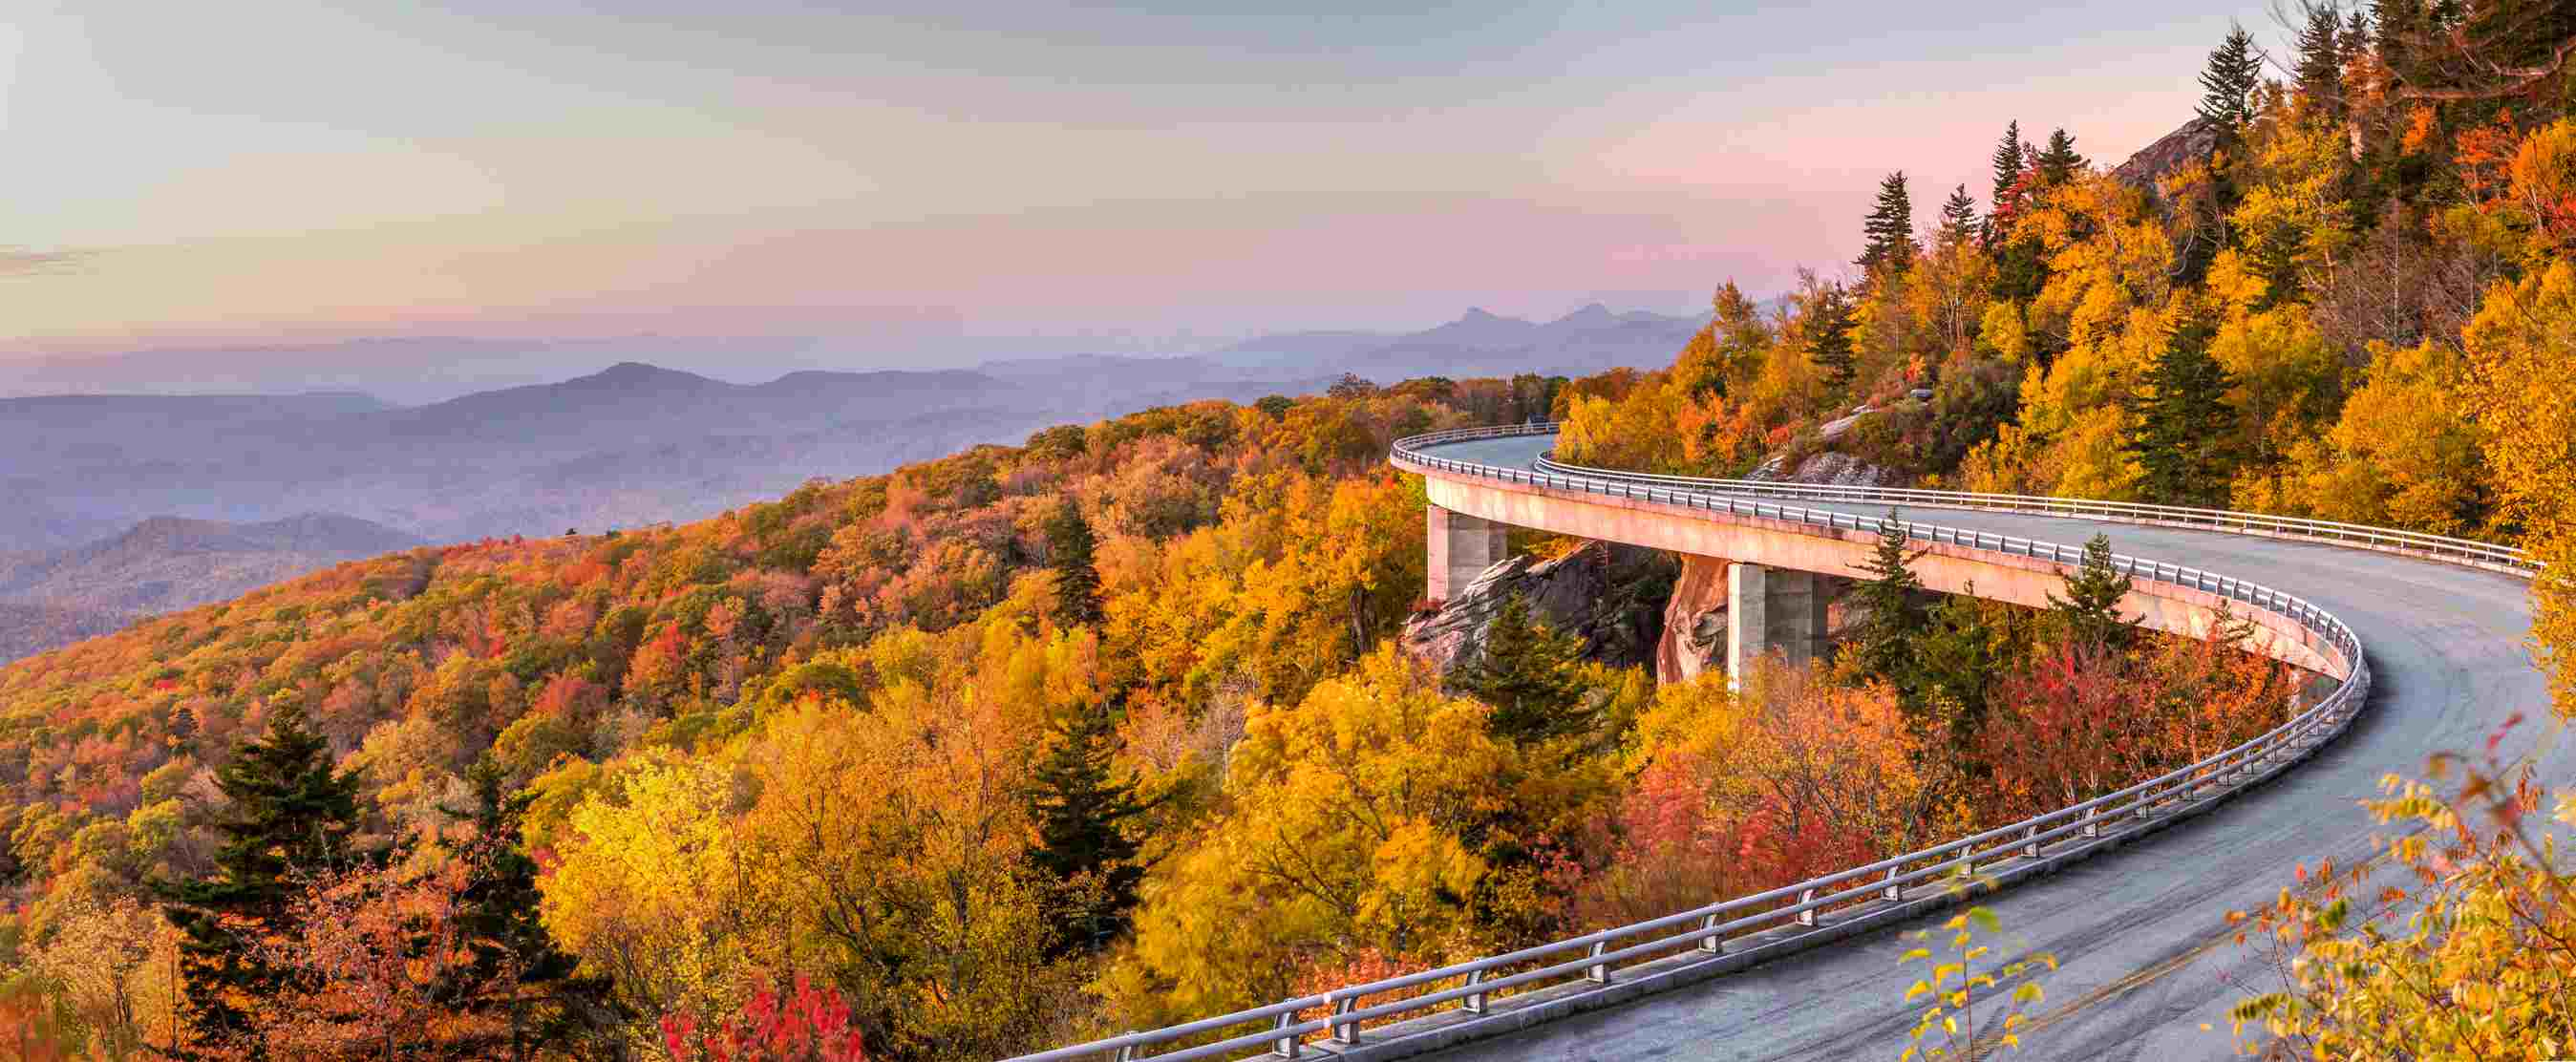 Scenic Blue Ridge Parkway with forest on both sides of the road in peak autumn colors, with mountains in the distance and a pink sunset